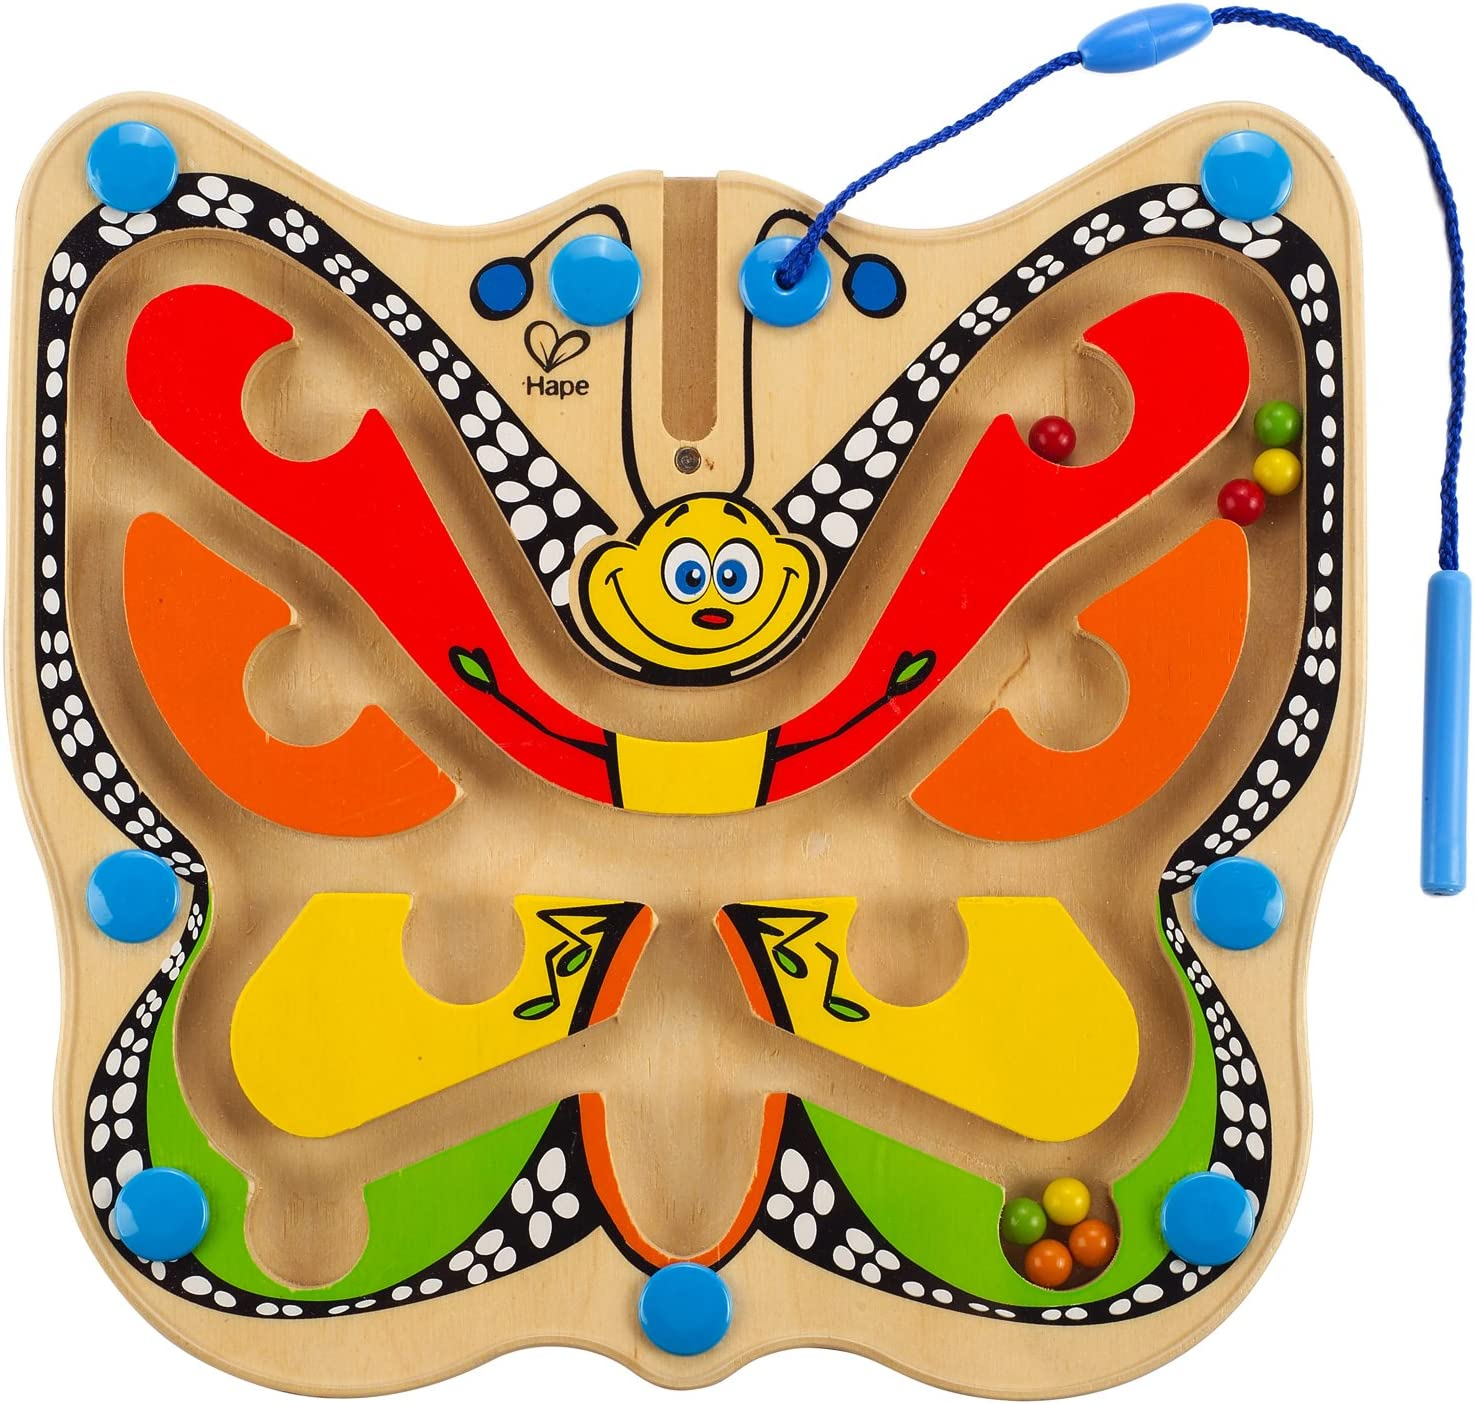 Award Winning Price reduction Hape Color Flutter Butterfly Wooden Kid's Direct stock discount Magnetic